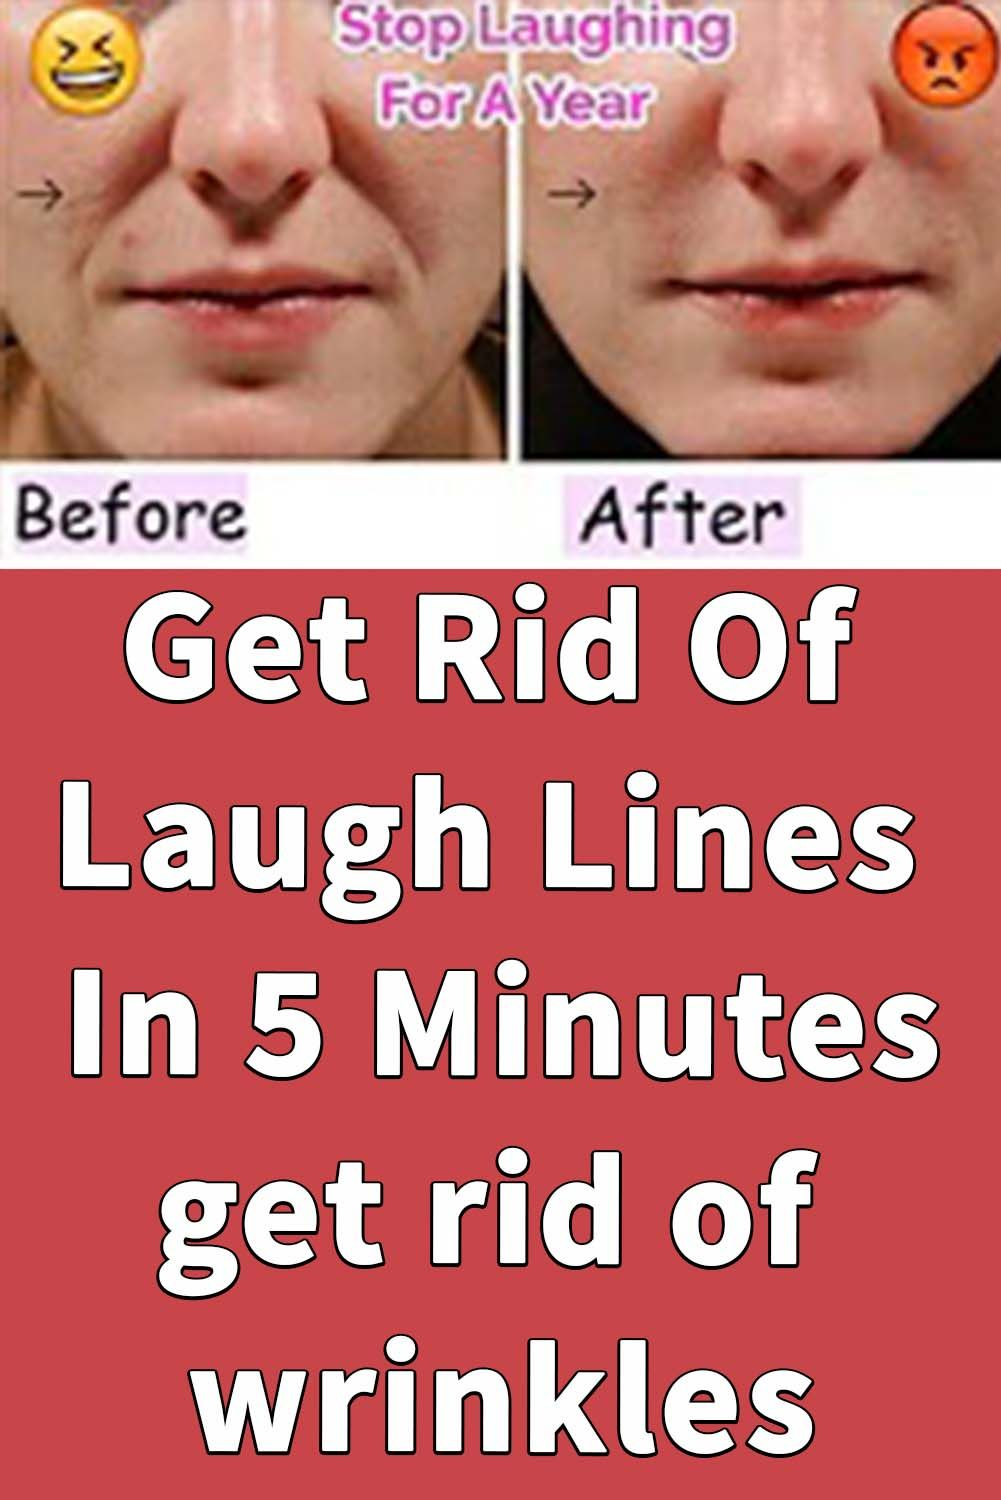 Get Rid Of Laugh Lines In 5 Minutes Face Care Routine Beauty Skin Care Routine Wrinkles